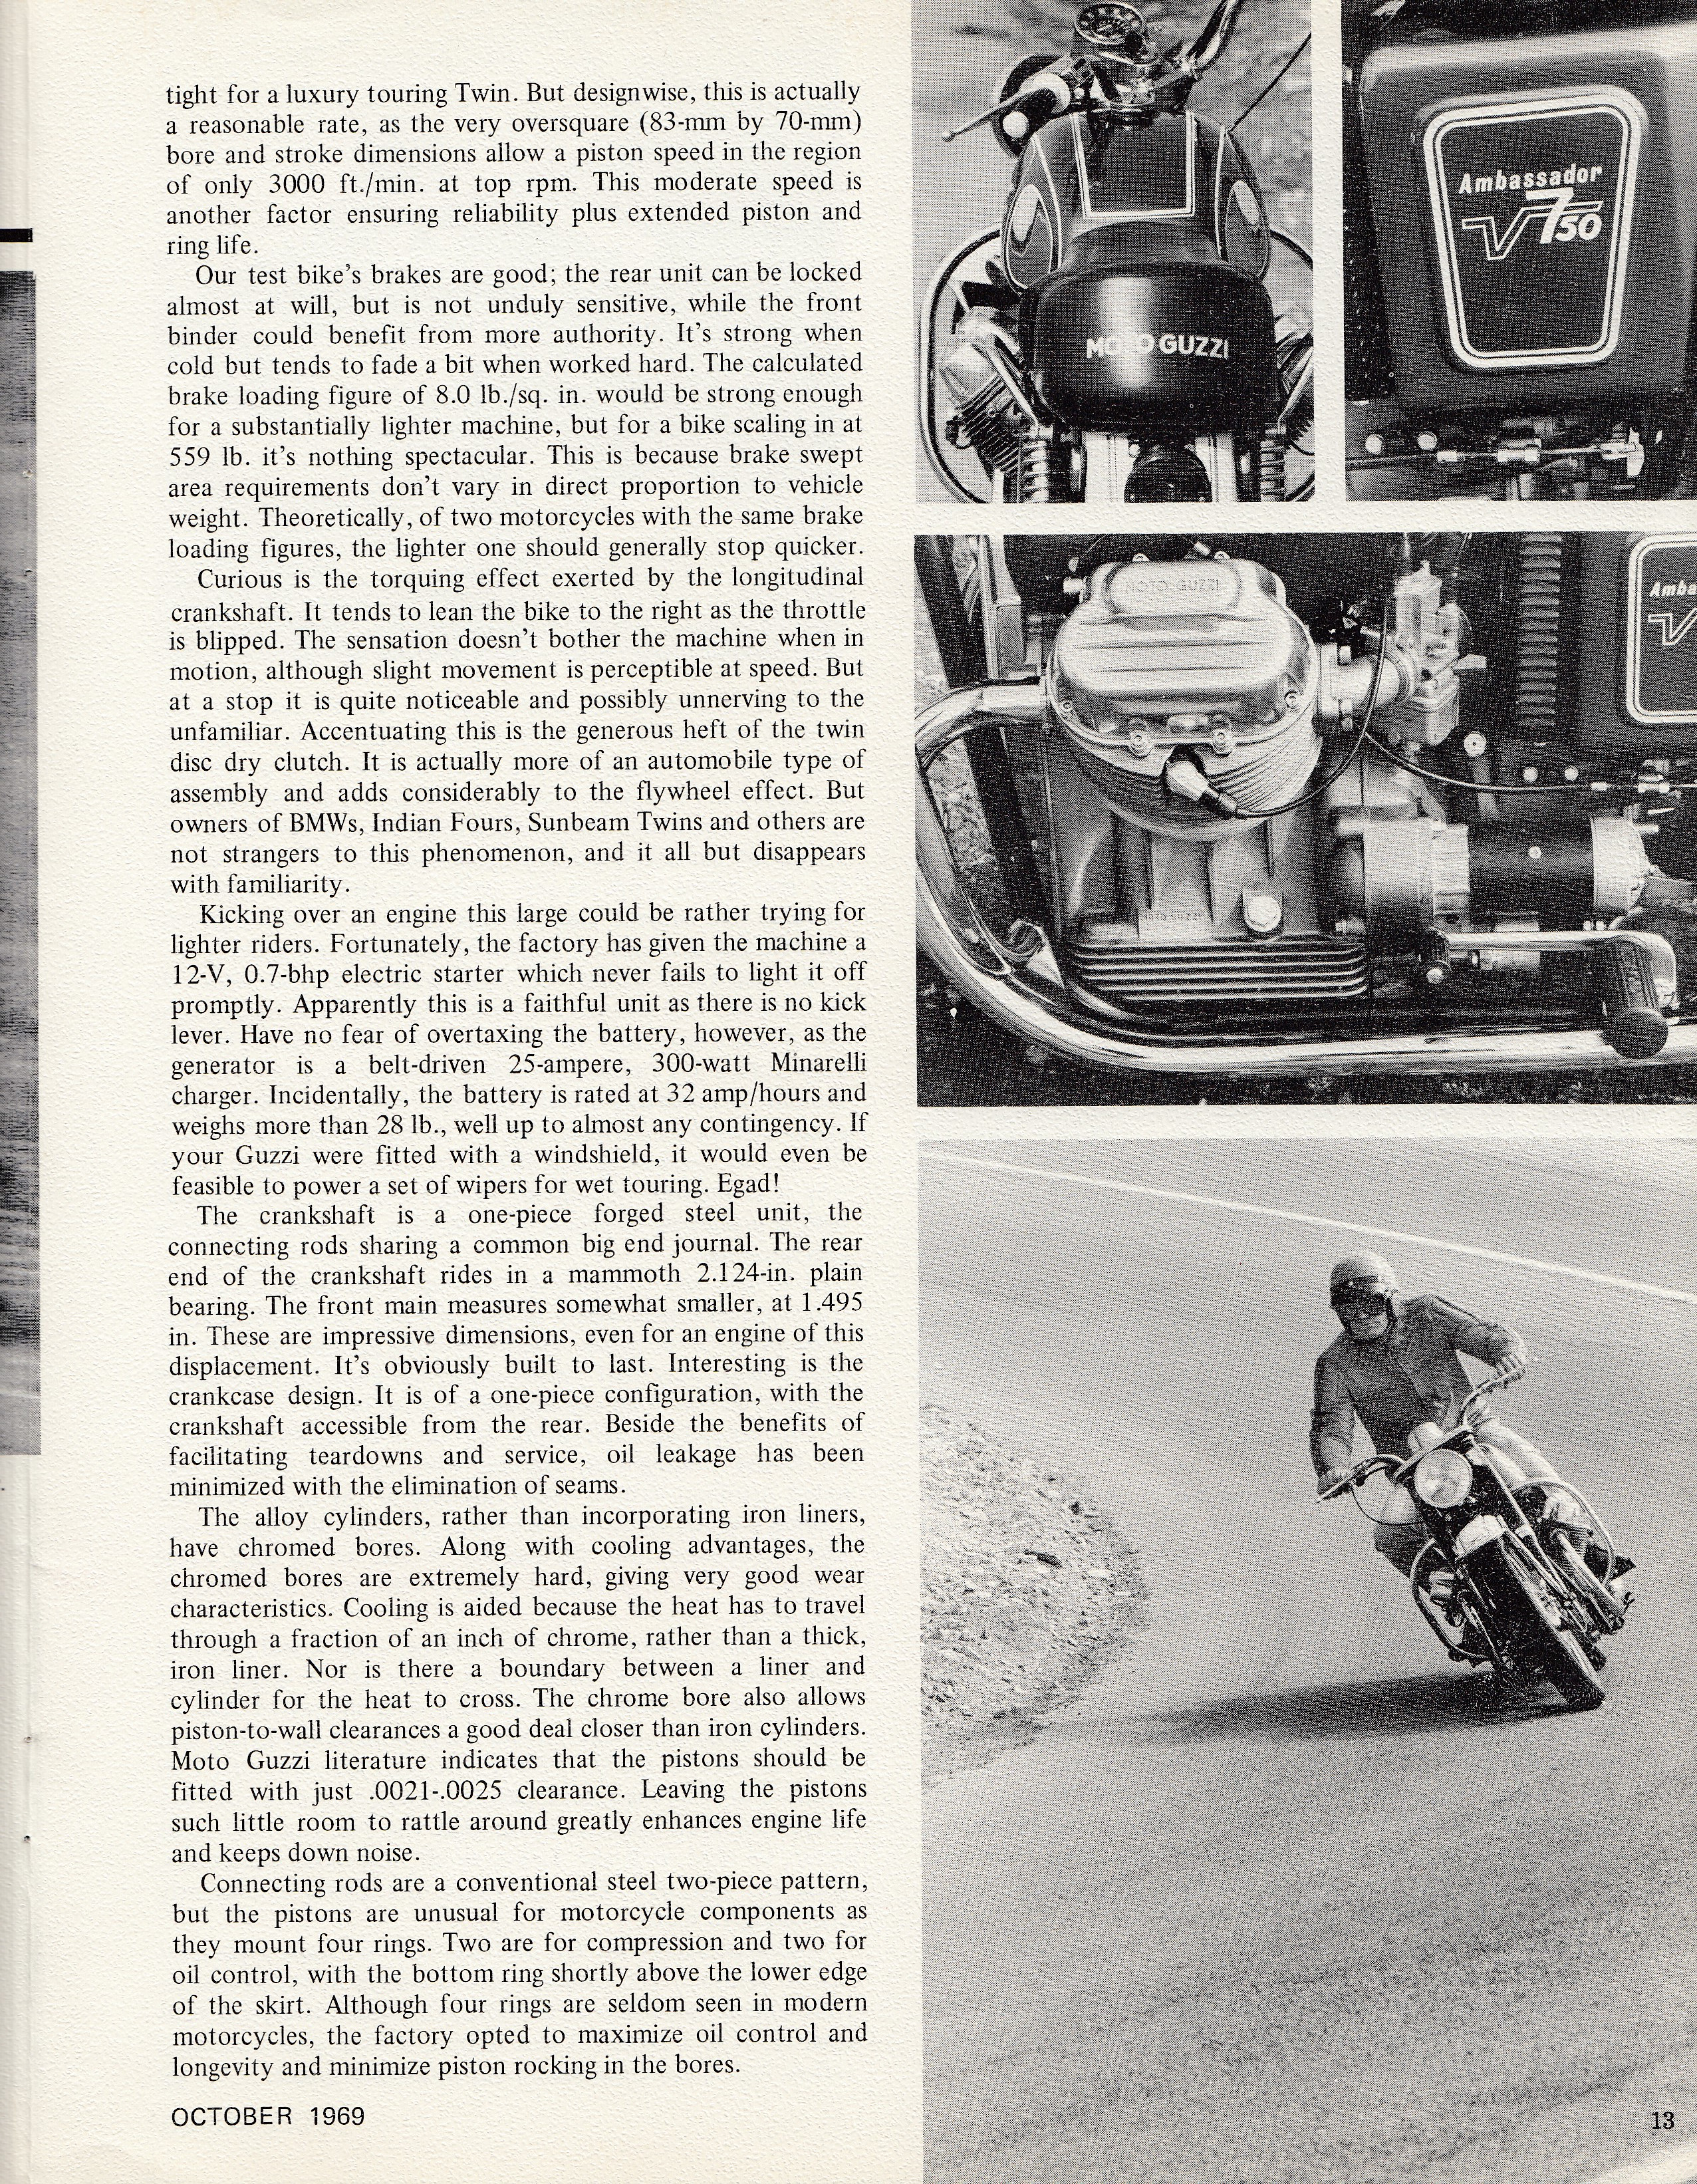 Moto Guzzi Ambassador factory brochure of magazine reviews, Page 13 of 16.